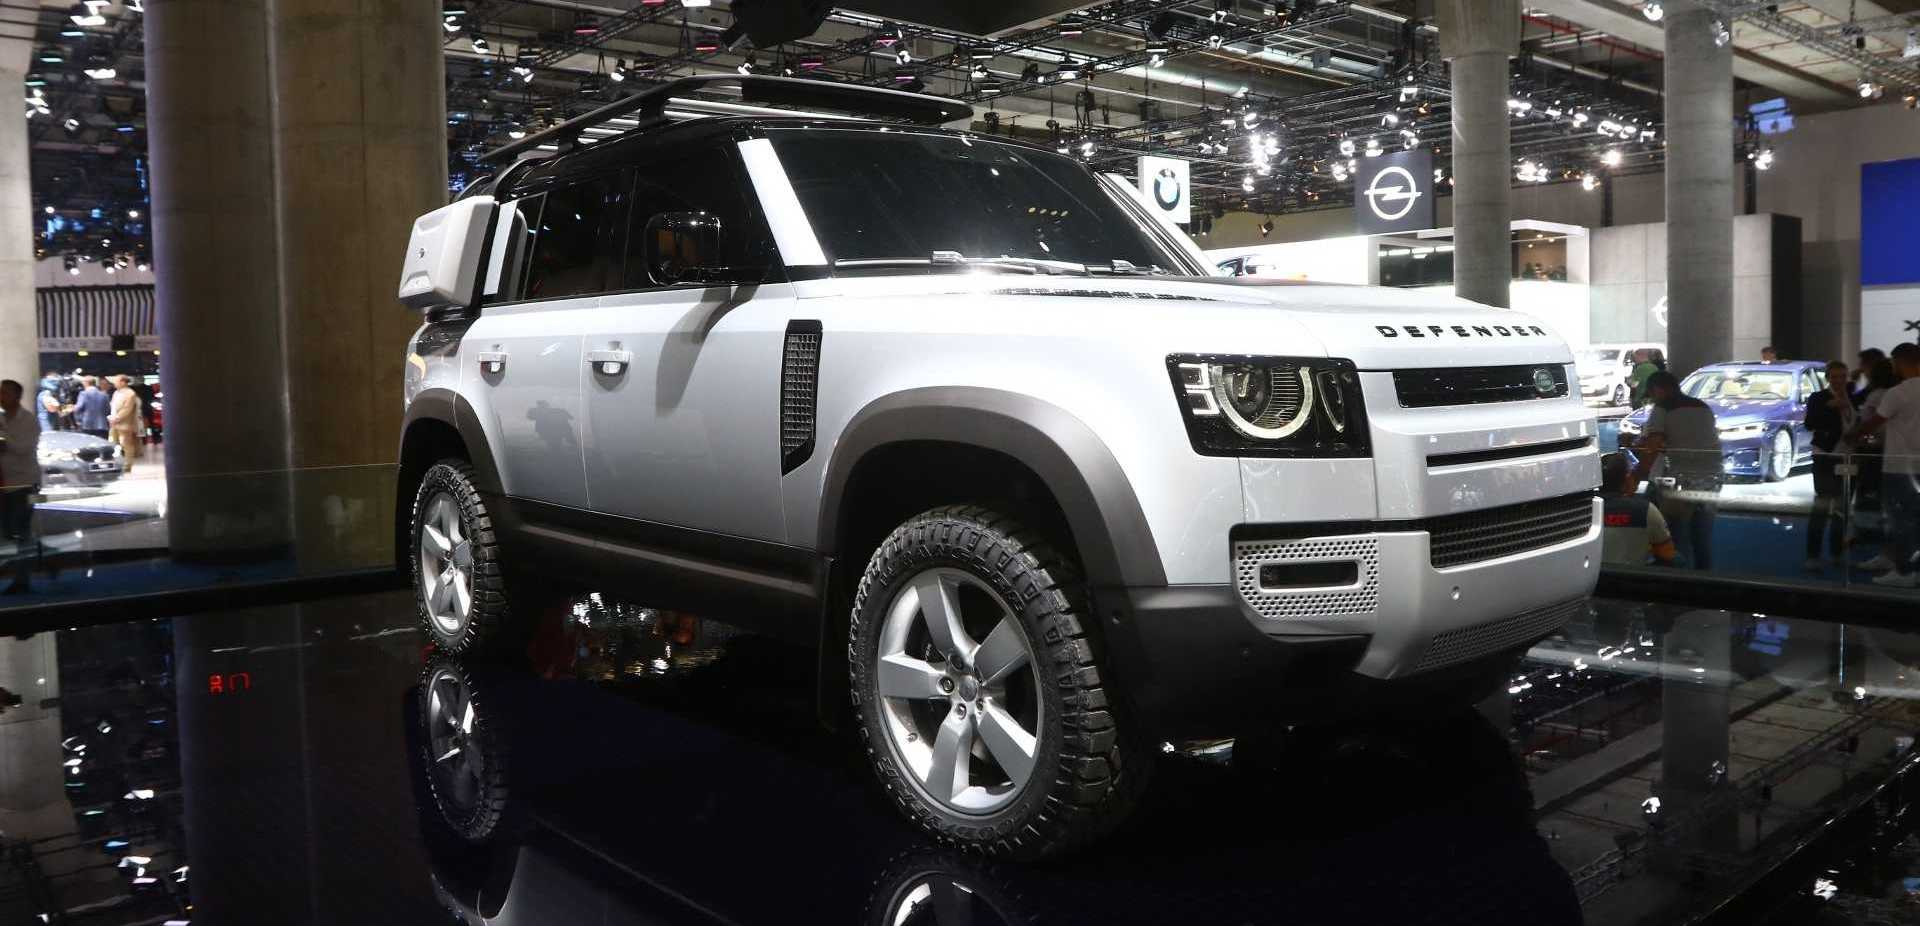 2020 Land Rover Defender Debuts With New Tech, Old Charm